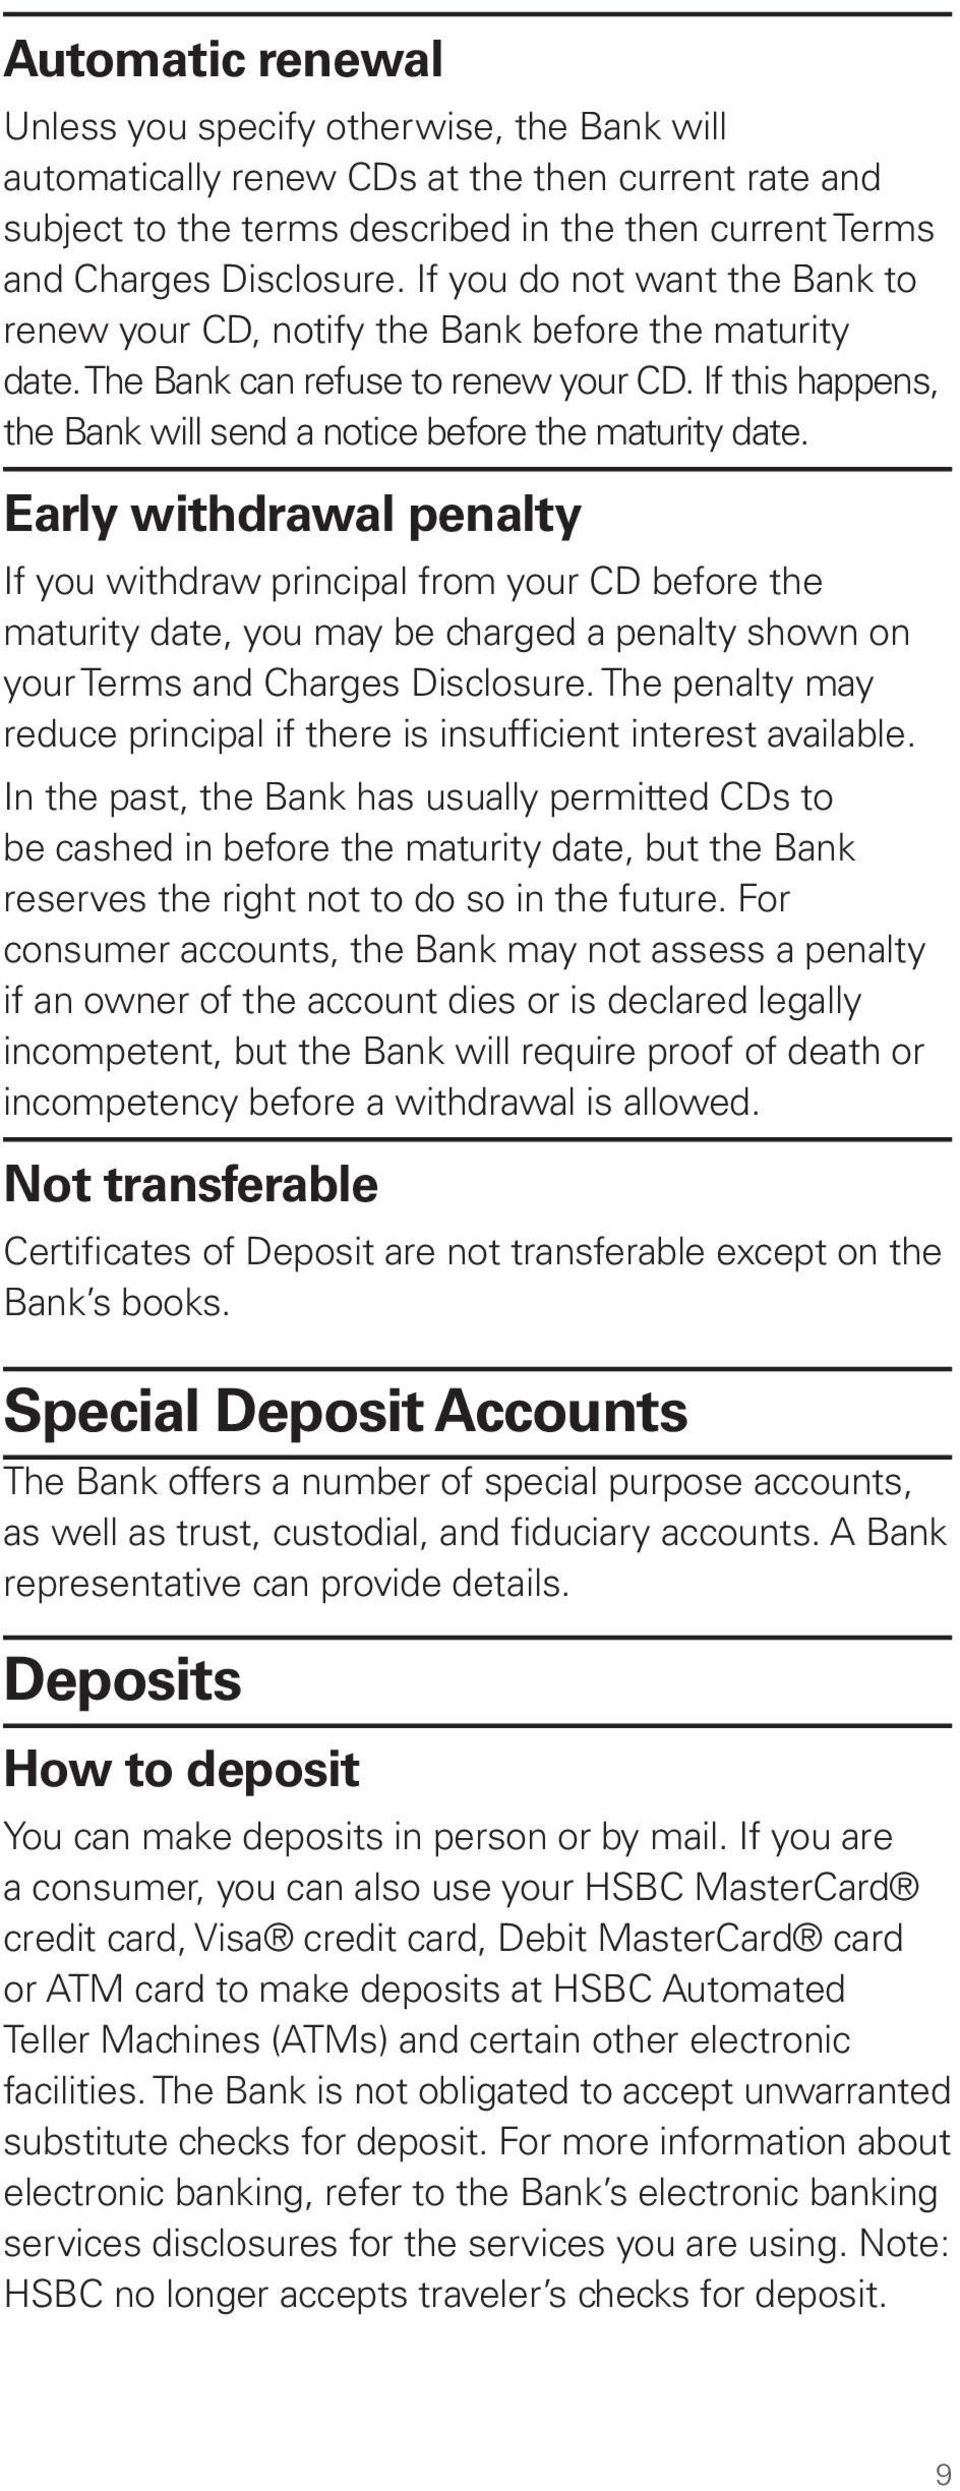 Early withdrawal penalty If you withdraw principal from your CD before the maturity date, you may be charged a penalty shown on your Terms and Charges Disclosure.